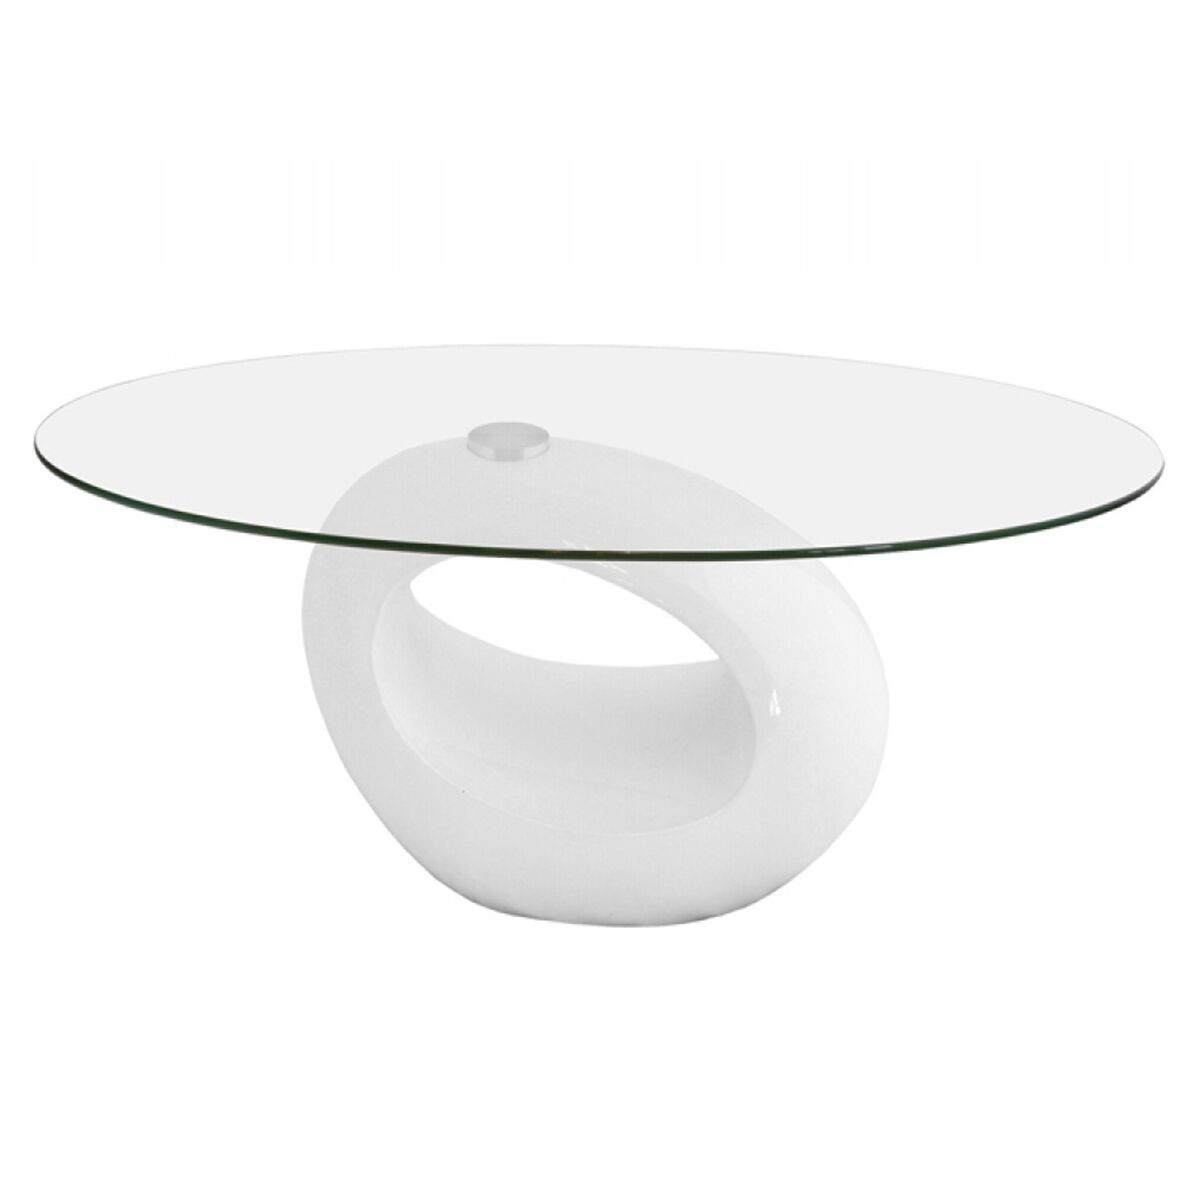 Neblus Curved White Clear Glass Coffee Table Fads